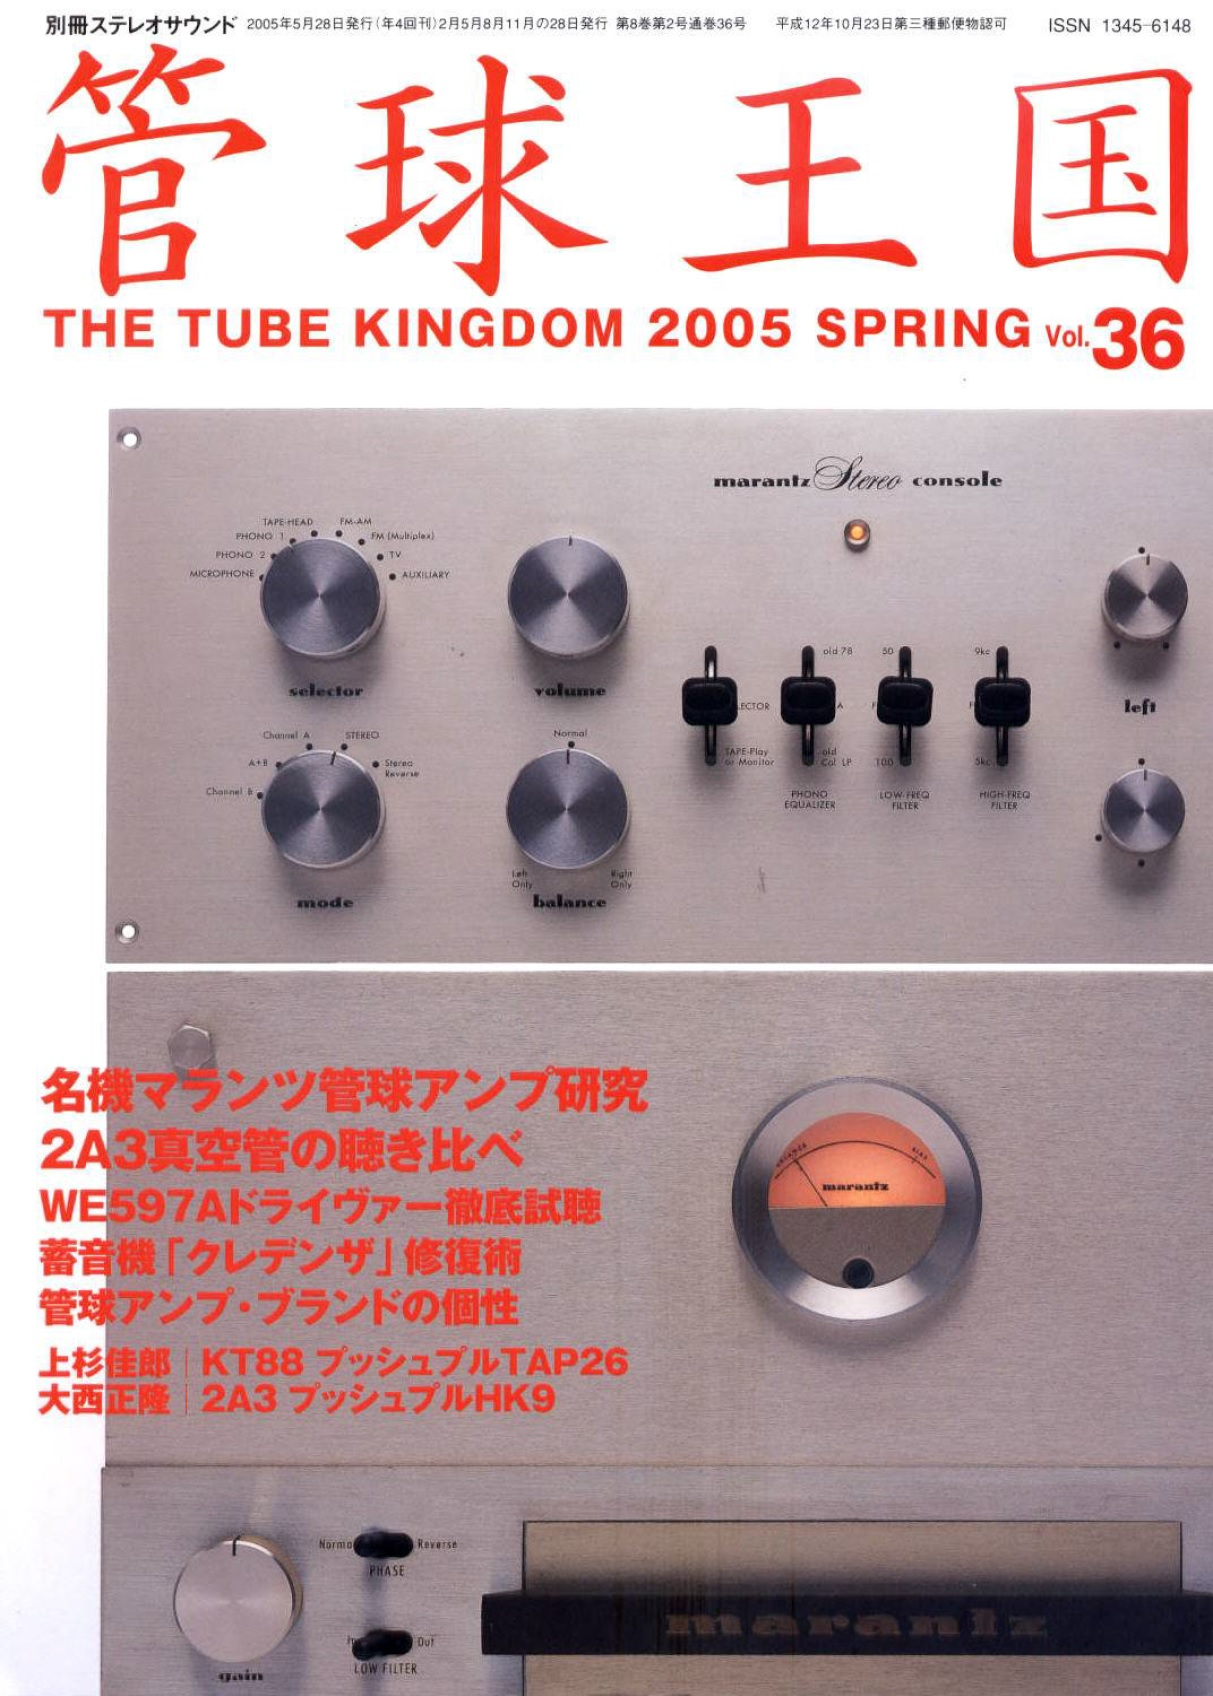 The Tube Kingdom Vol36 Spring 05